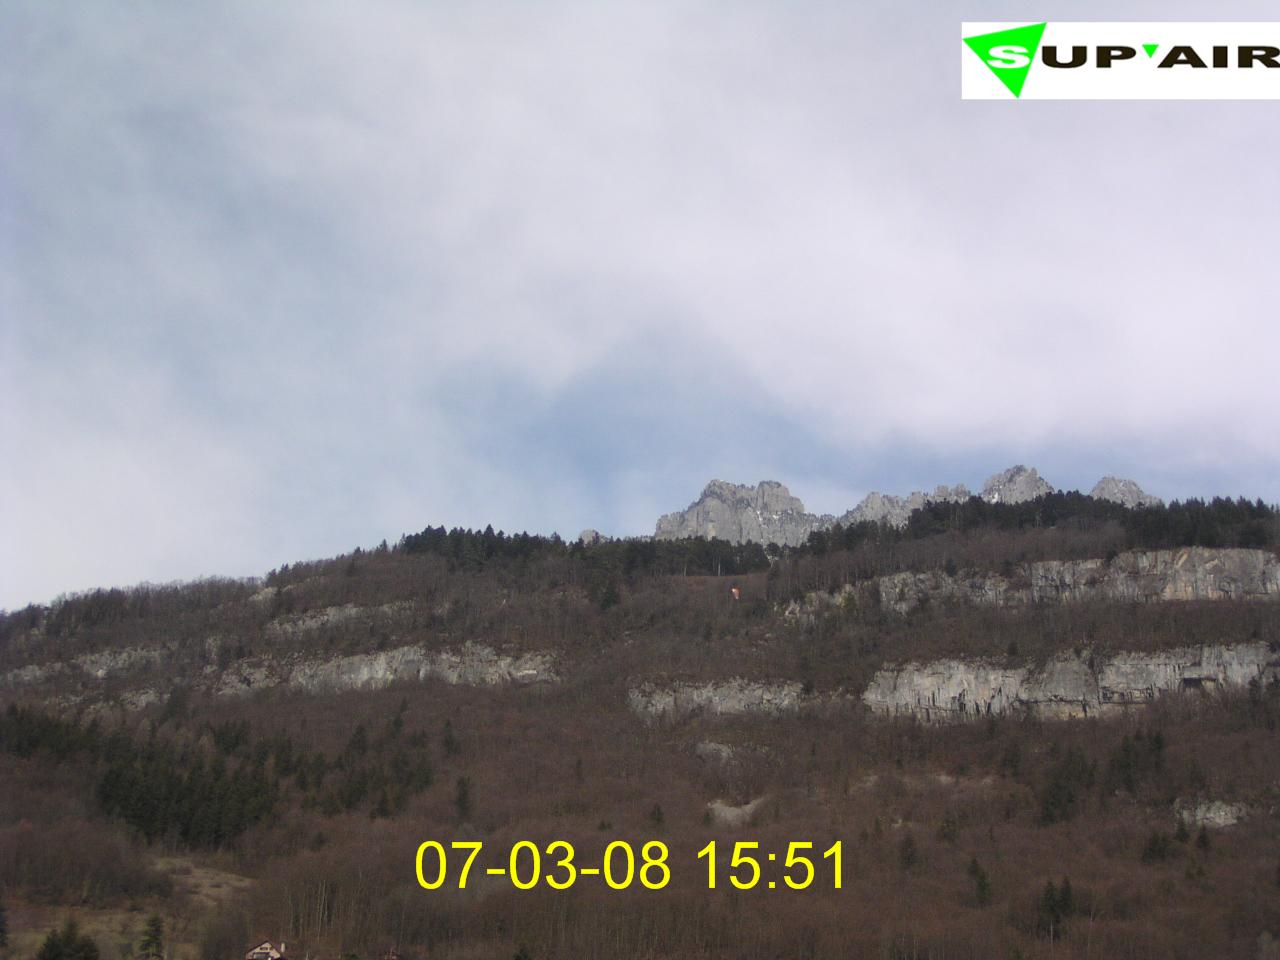 Supair parapente webcam photo 1